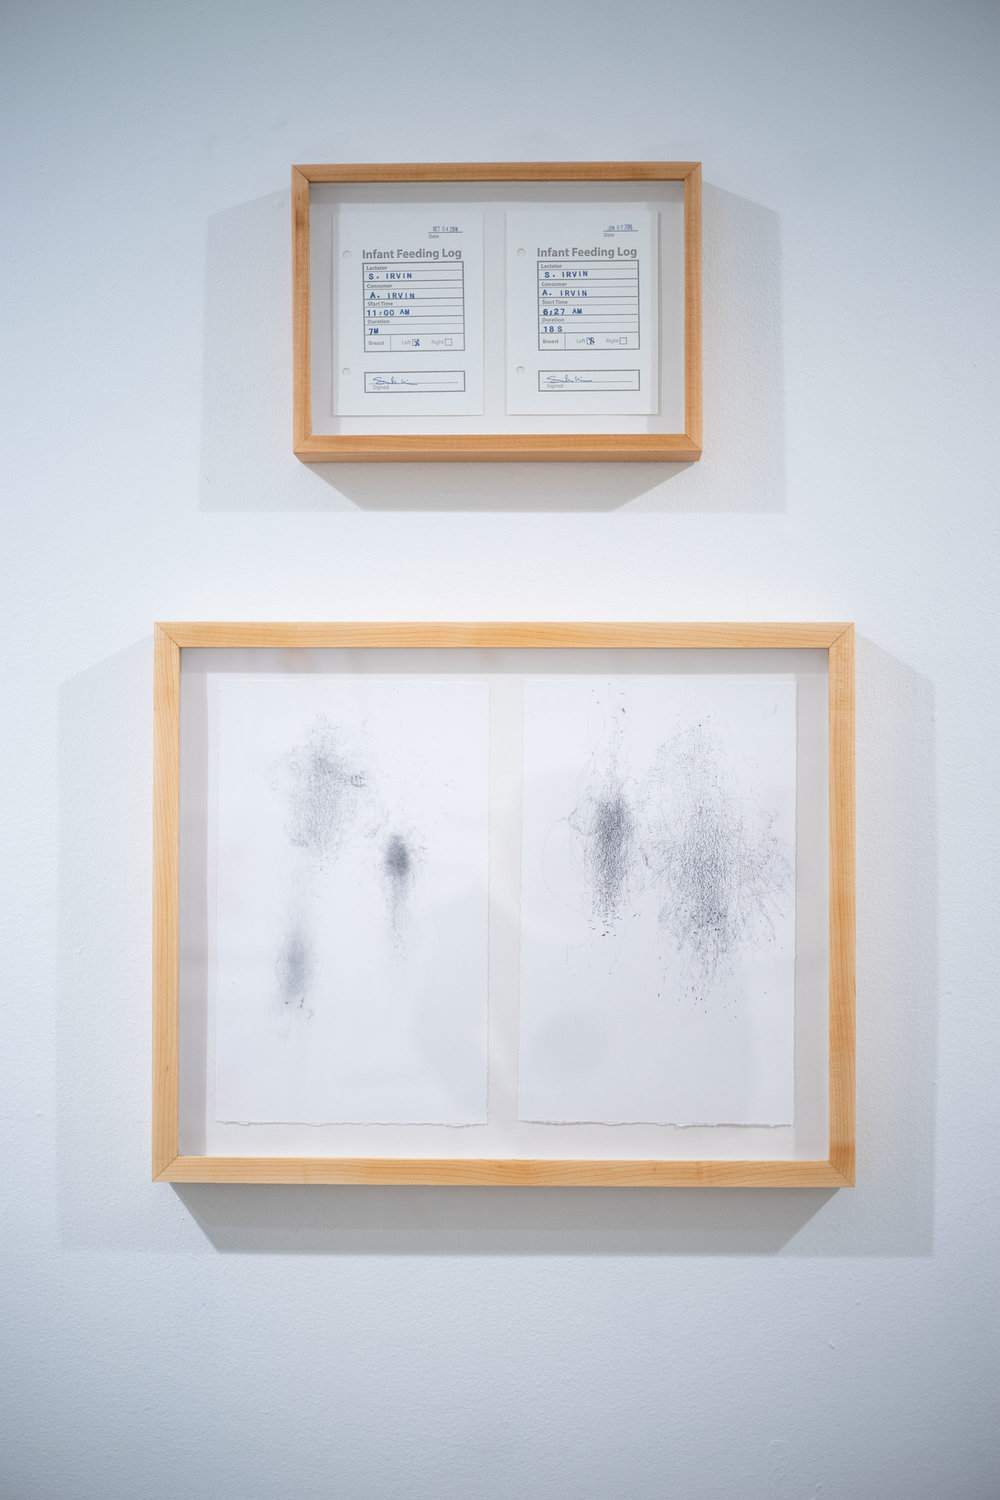 Installation view of Sarah Irvin's prints